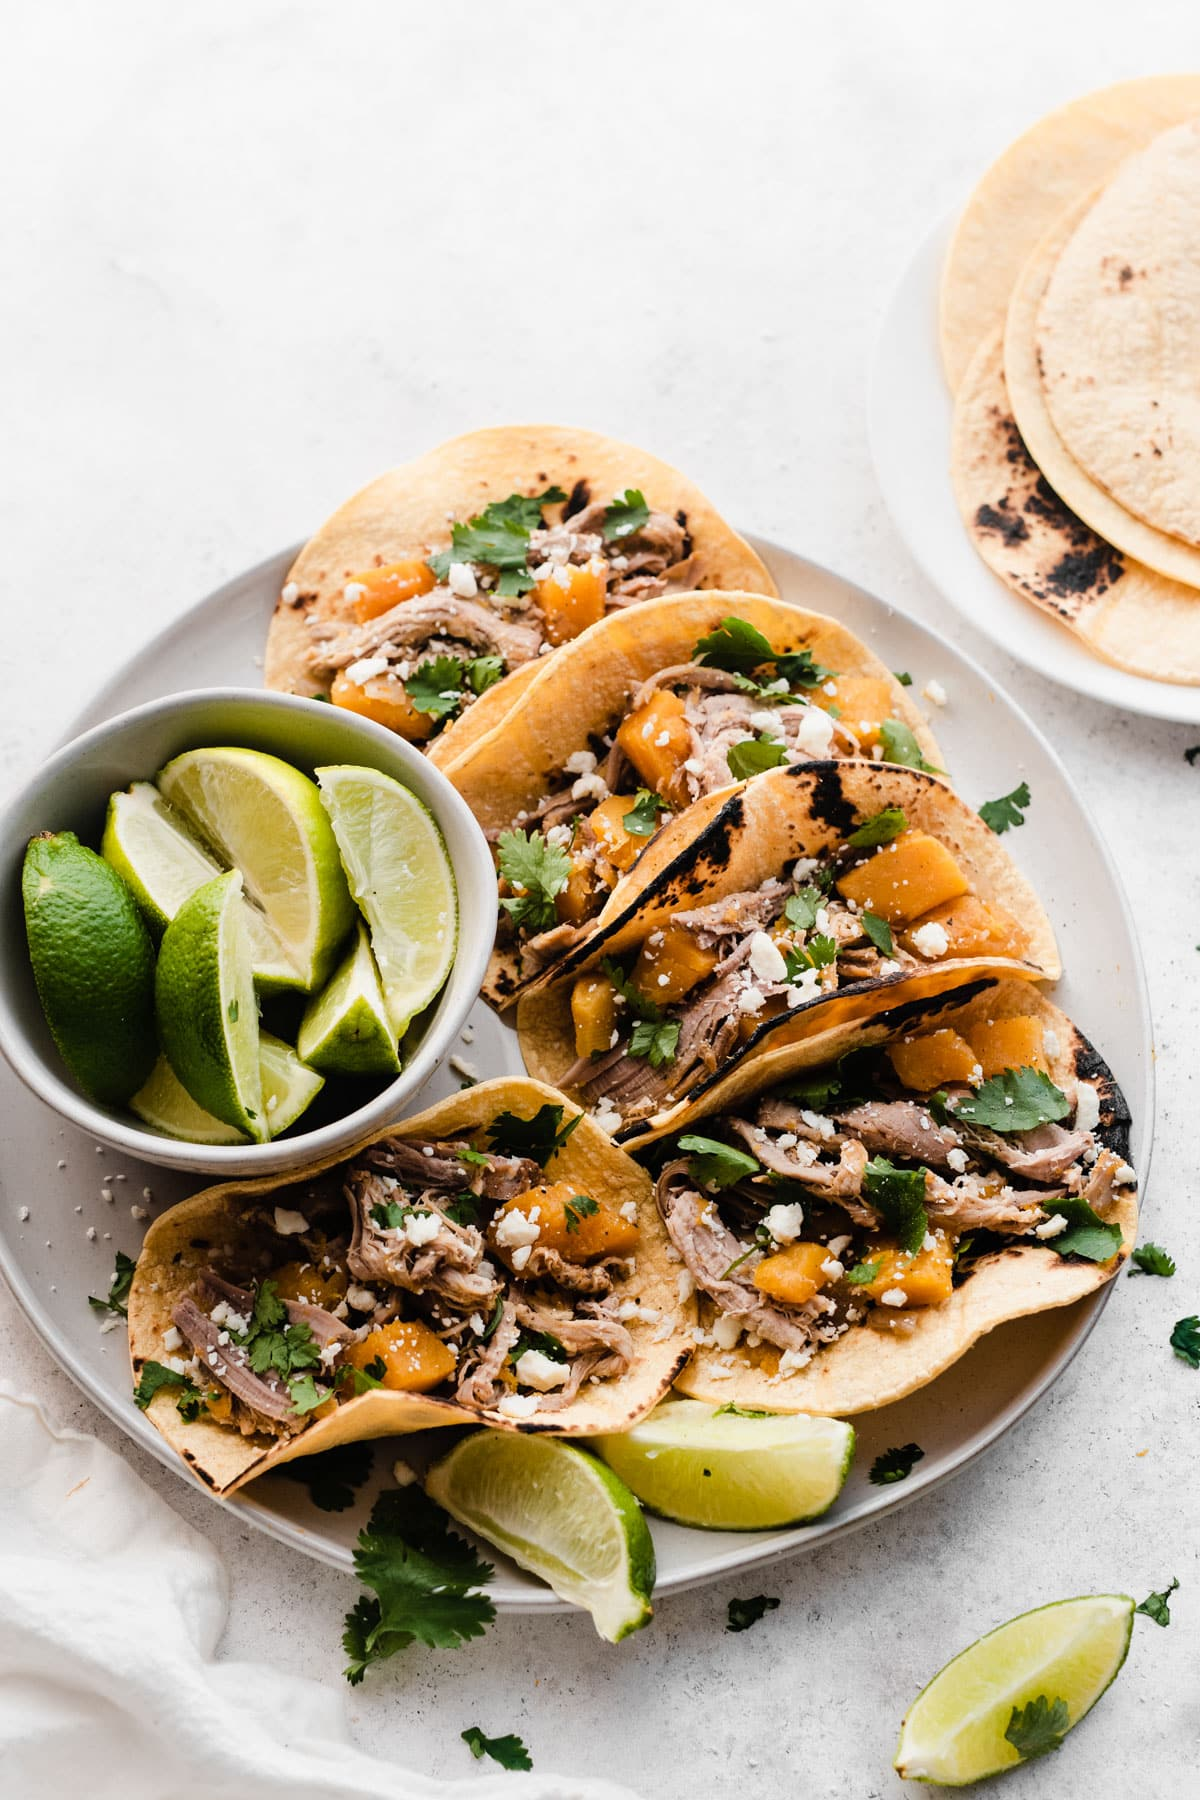 Slow Cooker Butternut Squash and Pulled Pork Tacos. Our entire family loved these!